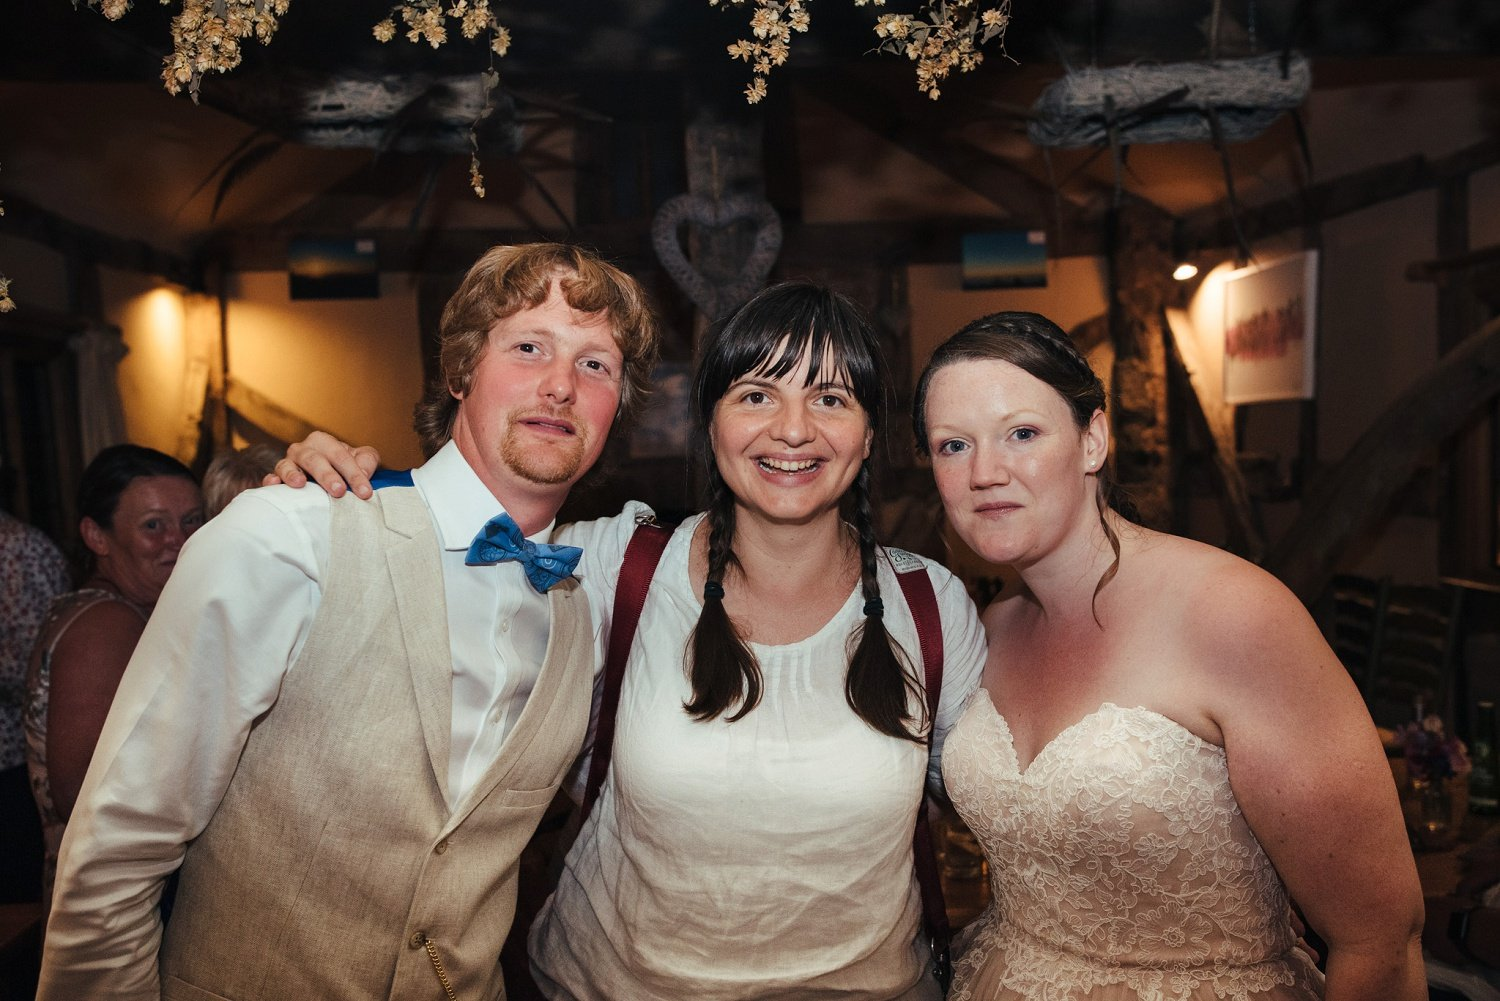 Photo of wedding photographer Cat from Cat Beardsley Photography with one of her couples at the end of the night